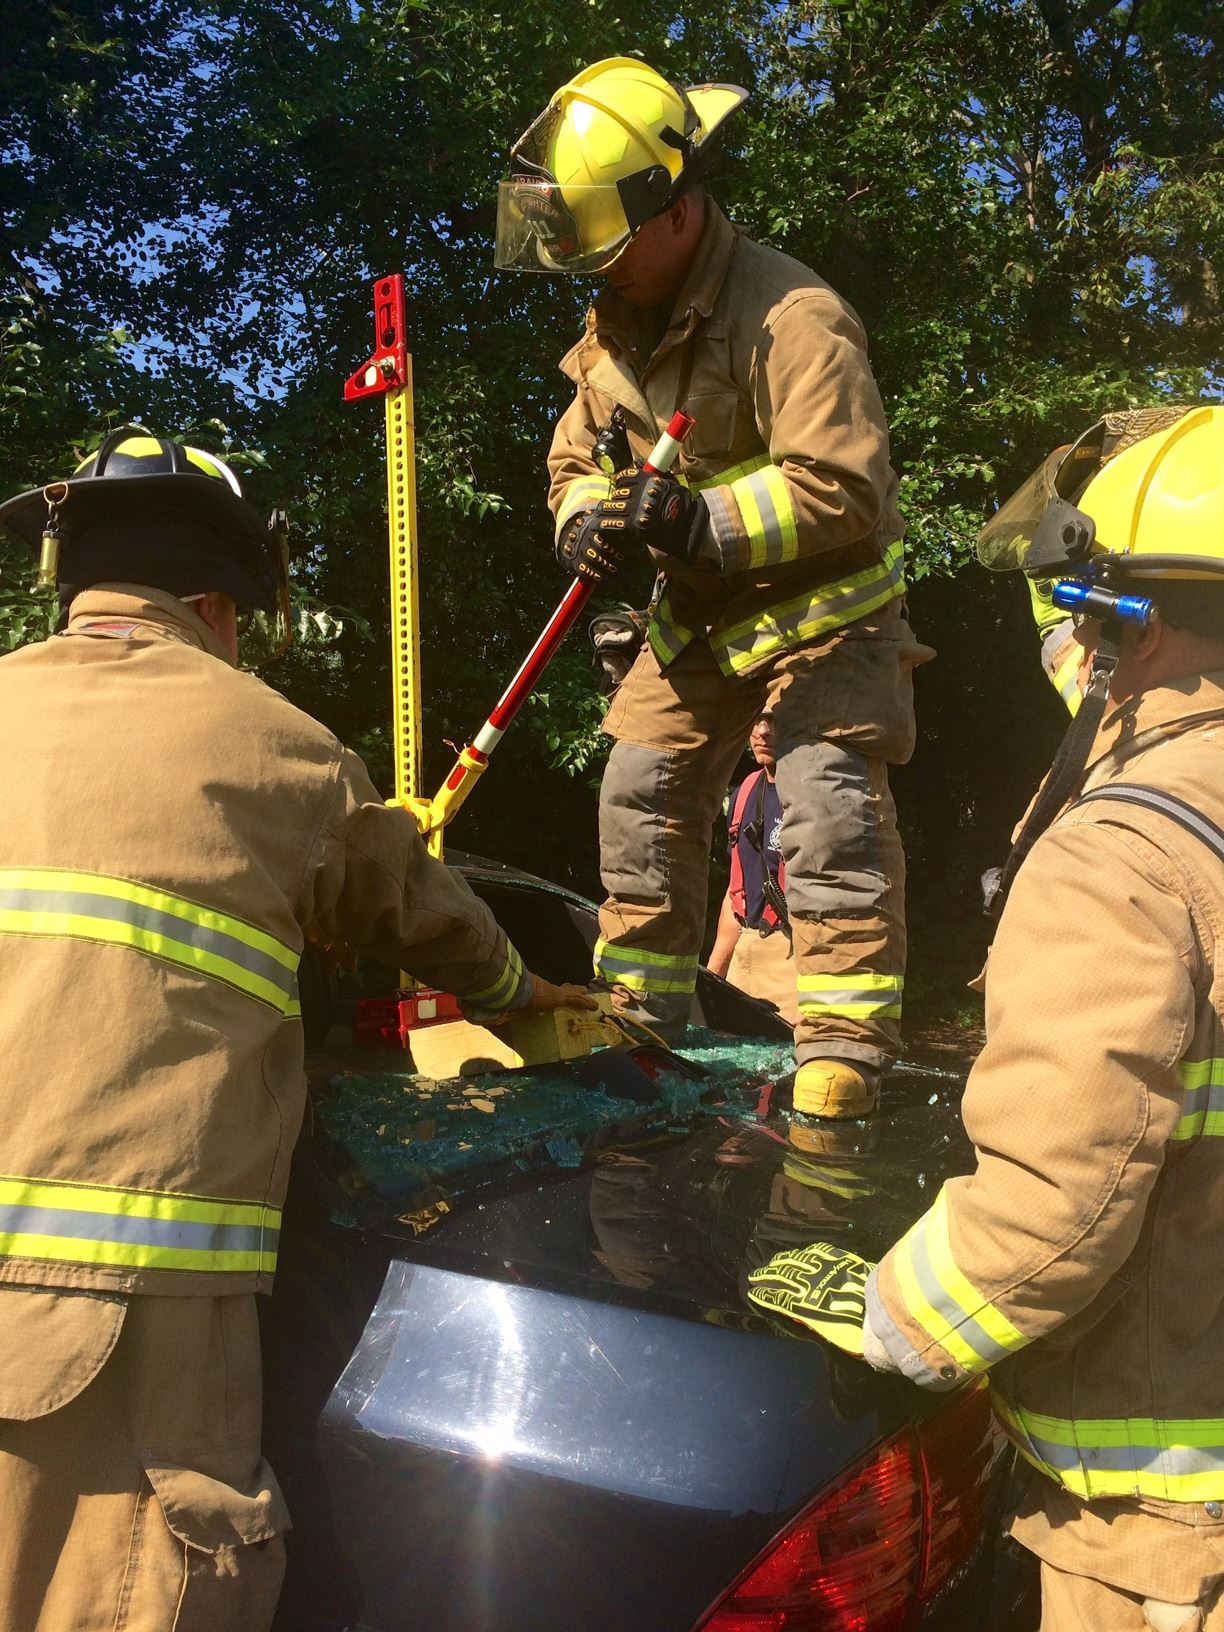 Extrication Hi-Lift Training